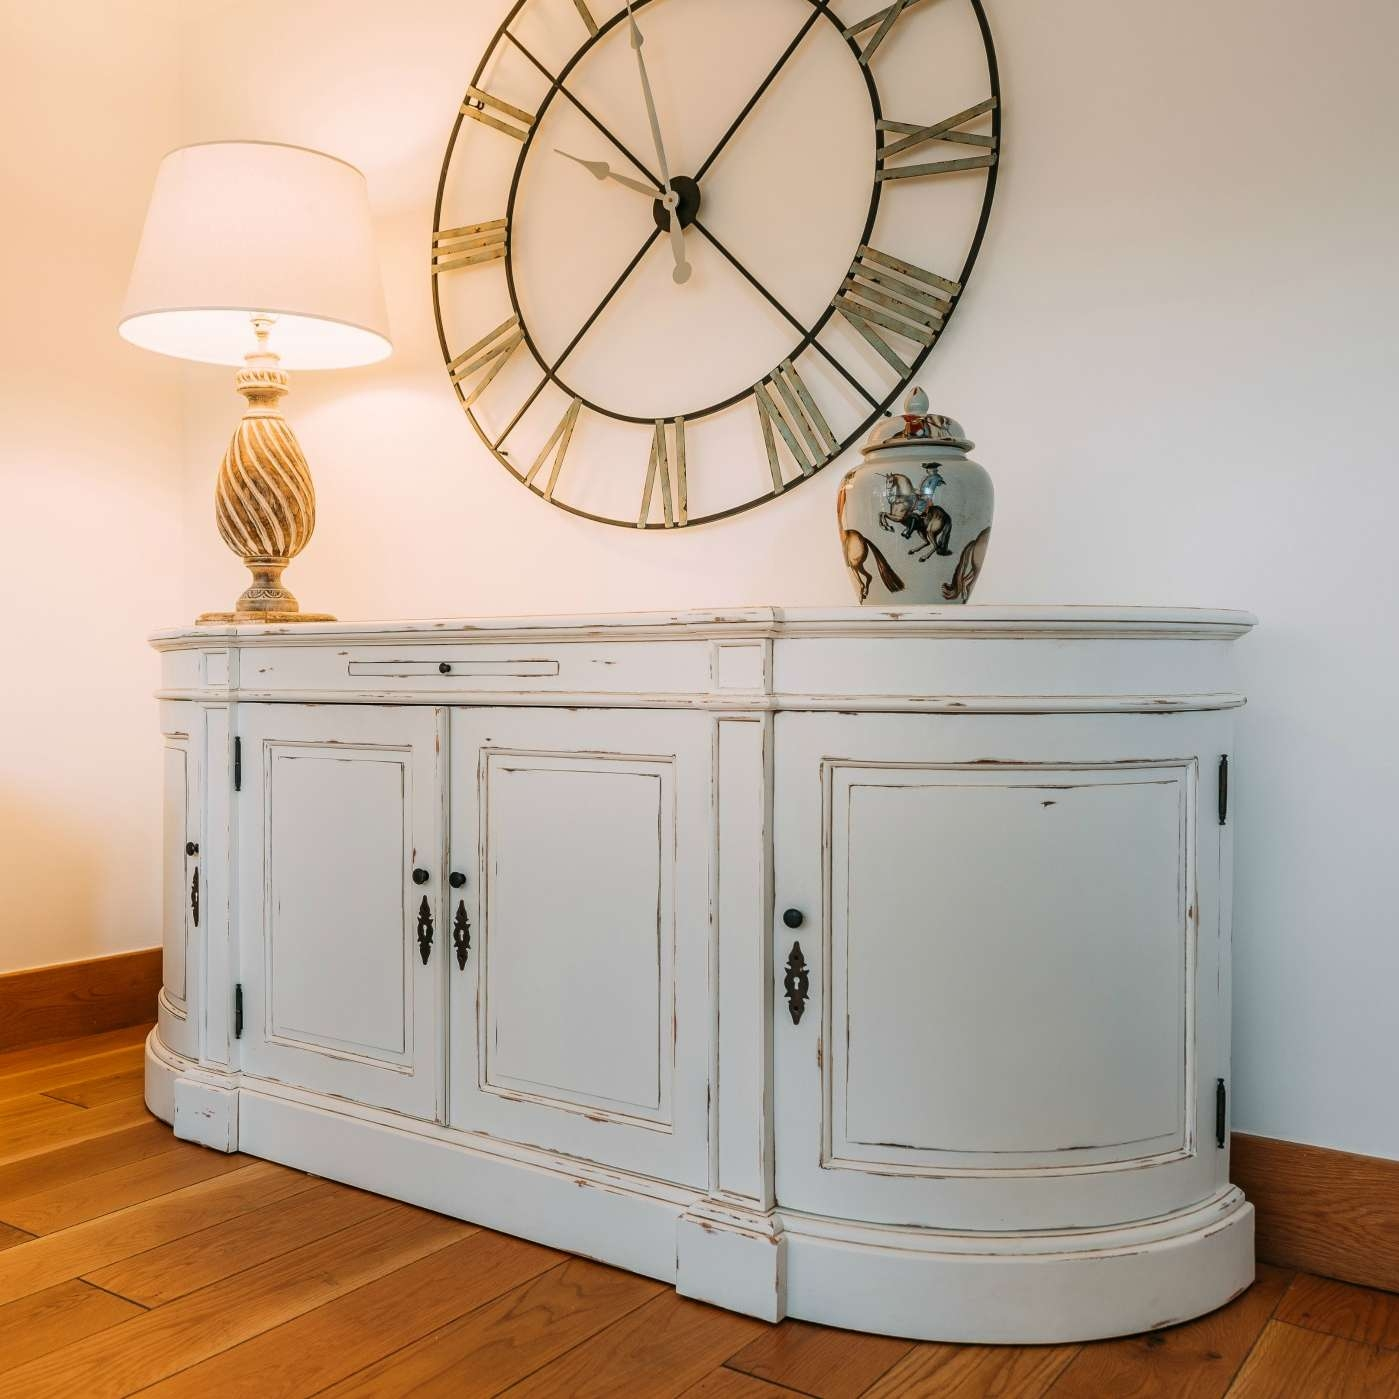 Aged French Distressed White Large Sideboard Furniture – La Maison Within Distressed Sideboards (View 2 of 20)